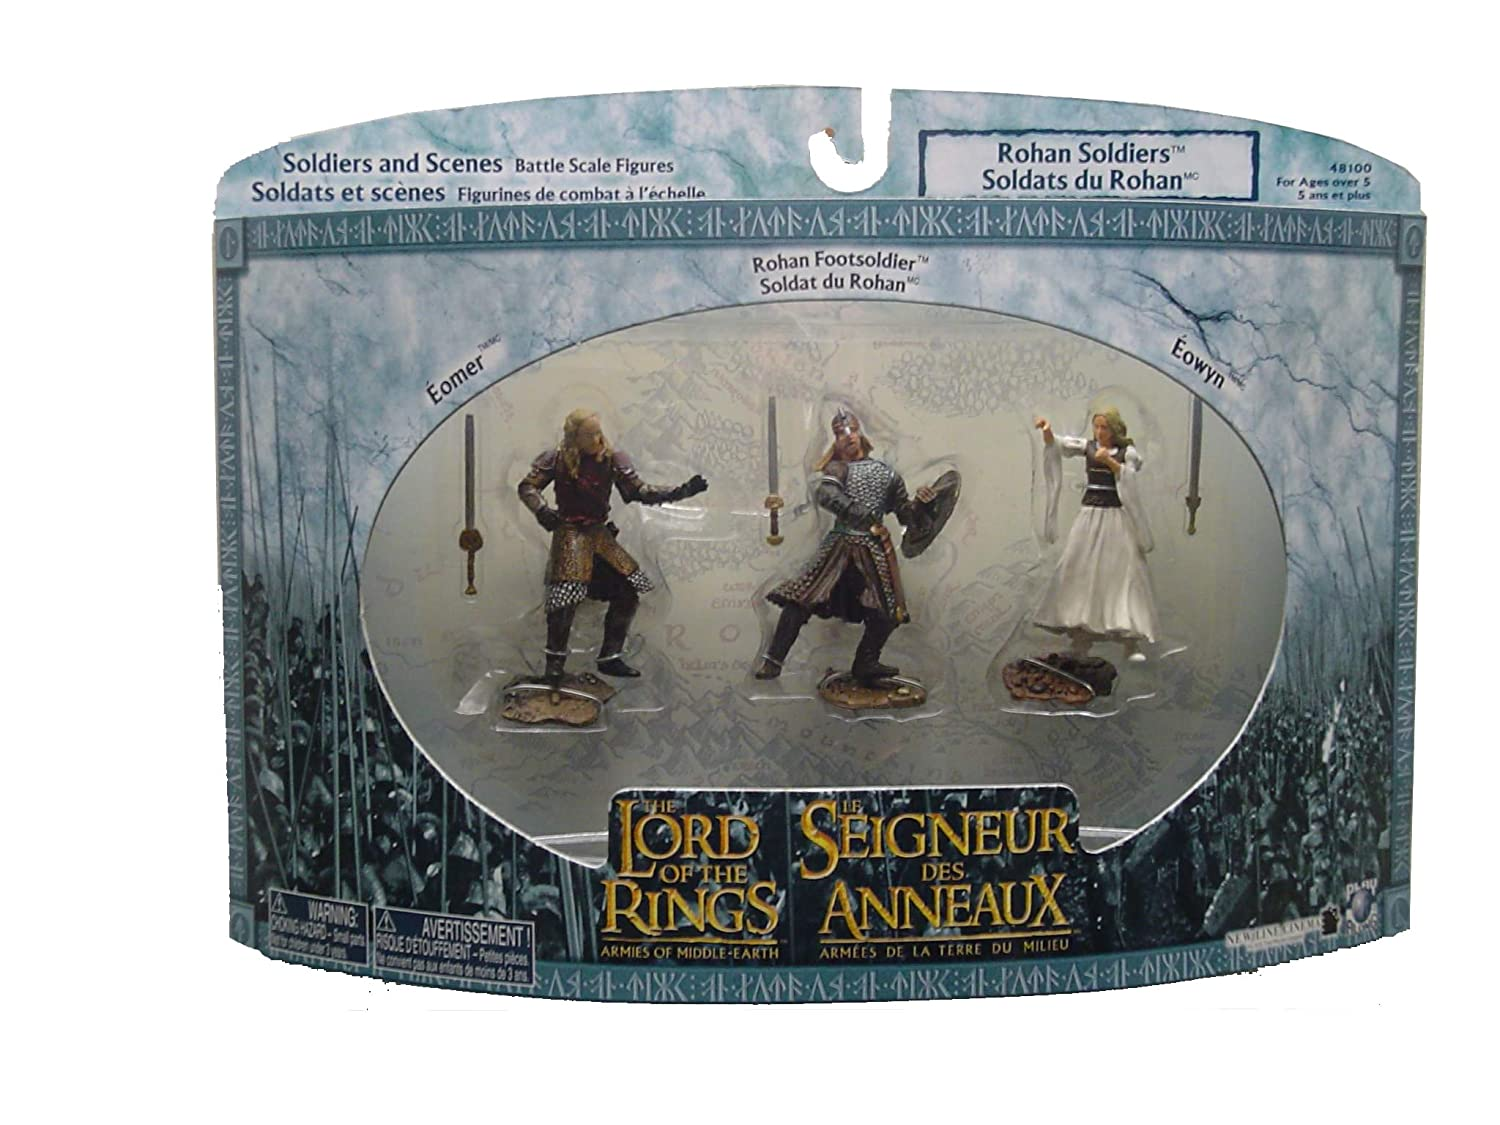 Lord of the Rings Armies of the Middle Earth Rohan Soldiers 3-pack Figures Play Along 48100